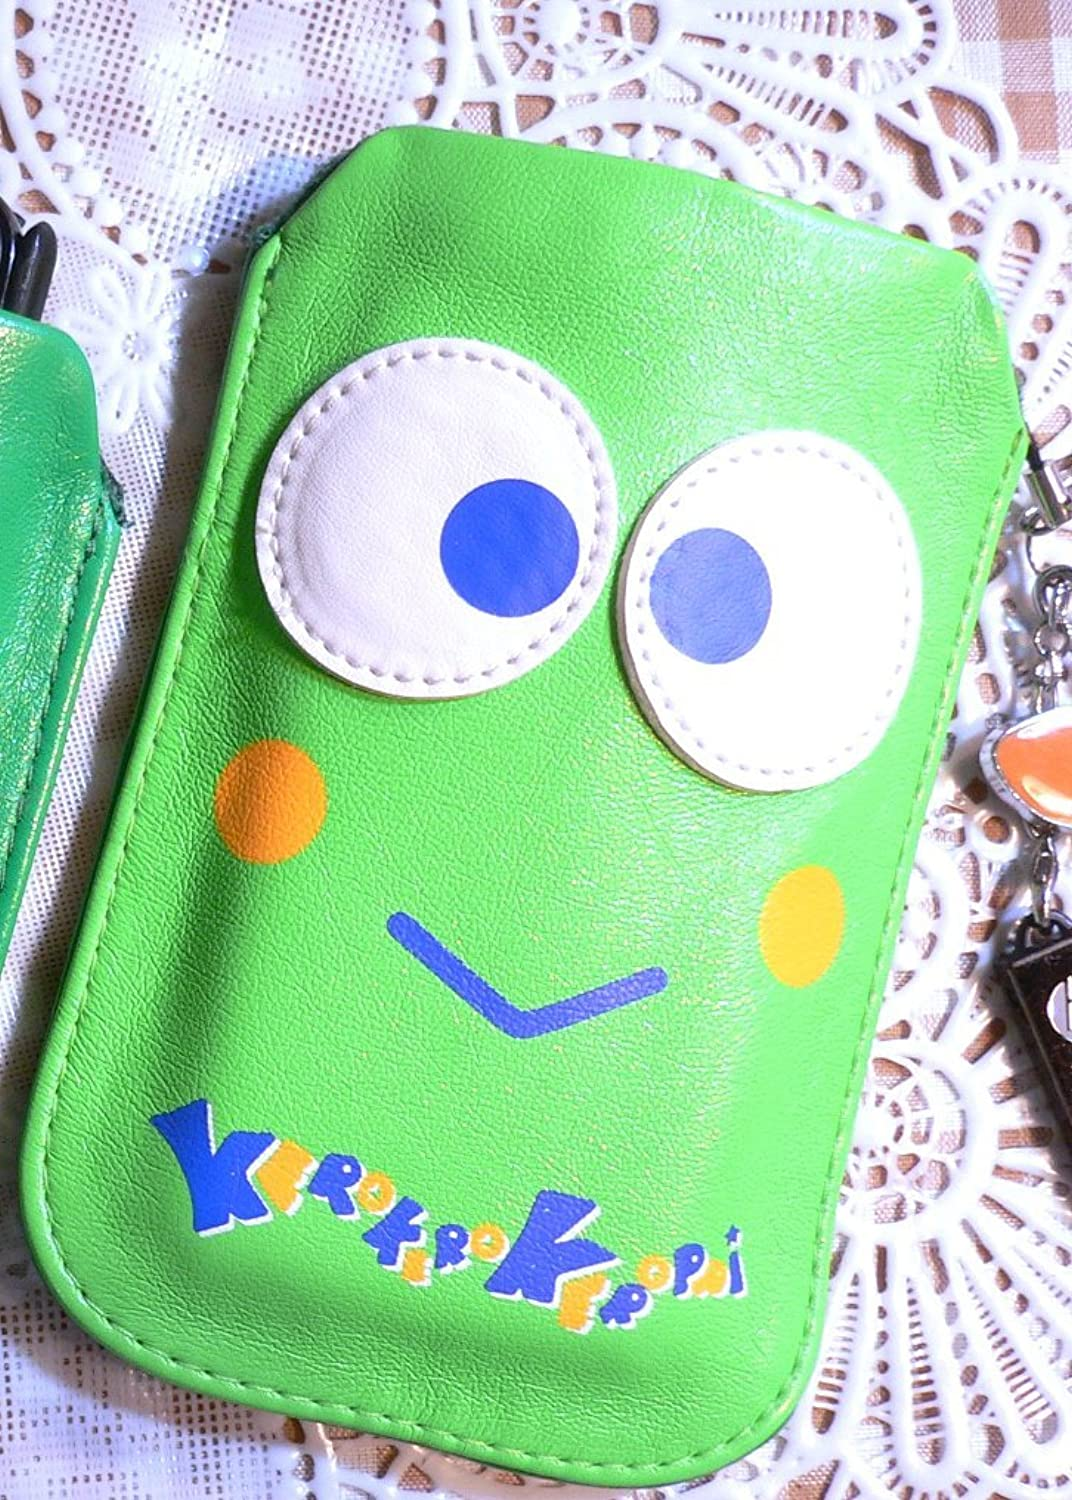 Keroppi PU Leather Pouch for Card Makeup Digital Camera Cell Phone Multi-purpose Bag